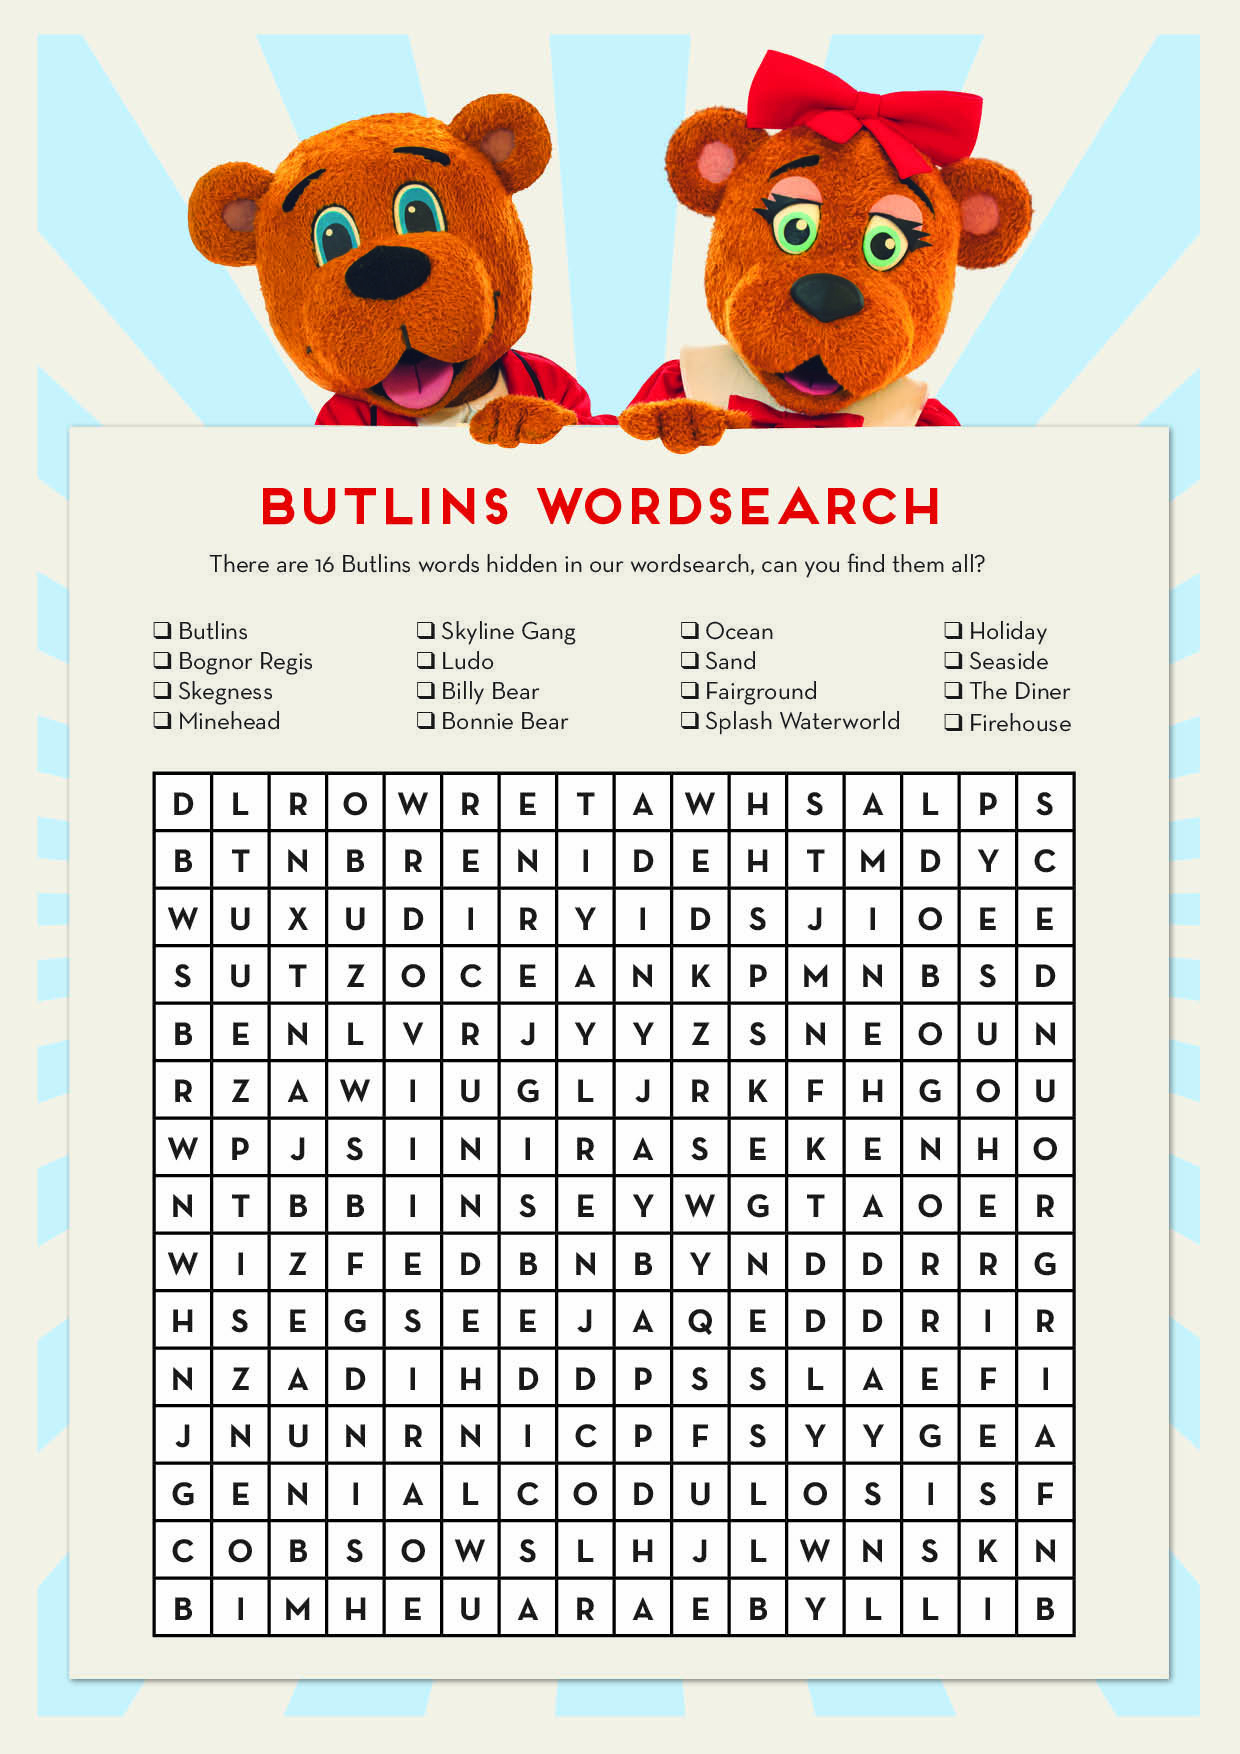 How Good Is Your Eyesight? Can You Find The Butlins Words In